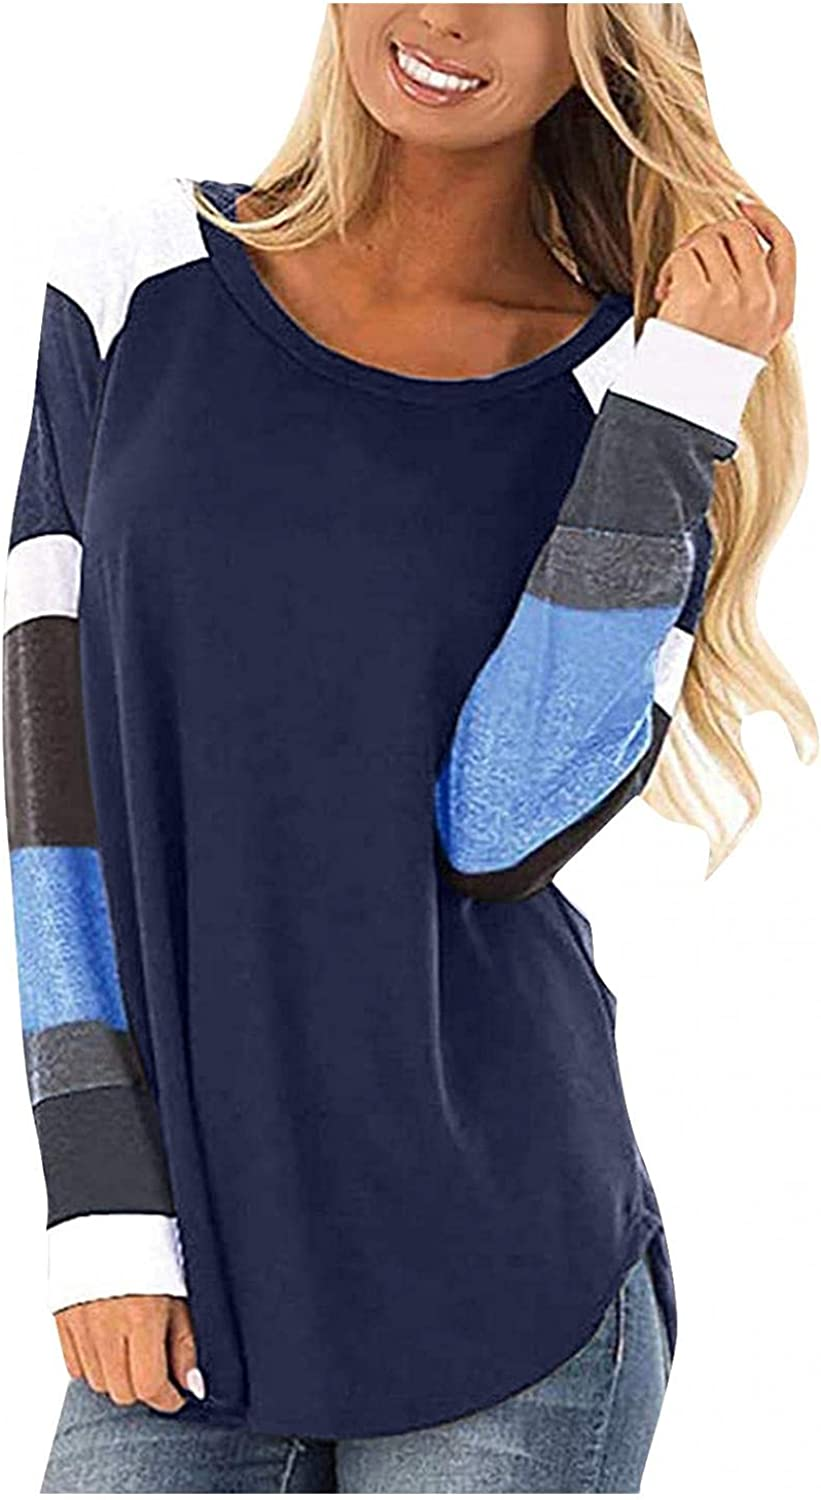 INNOVIERA Womens Long Sleeve Tops for Work,Womens Color Block Round Neck Tunic Tops Basic Solid Color Casual Loose Shirts